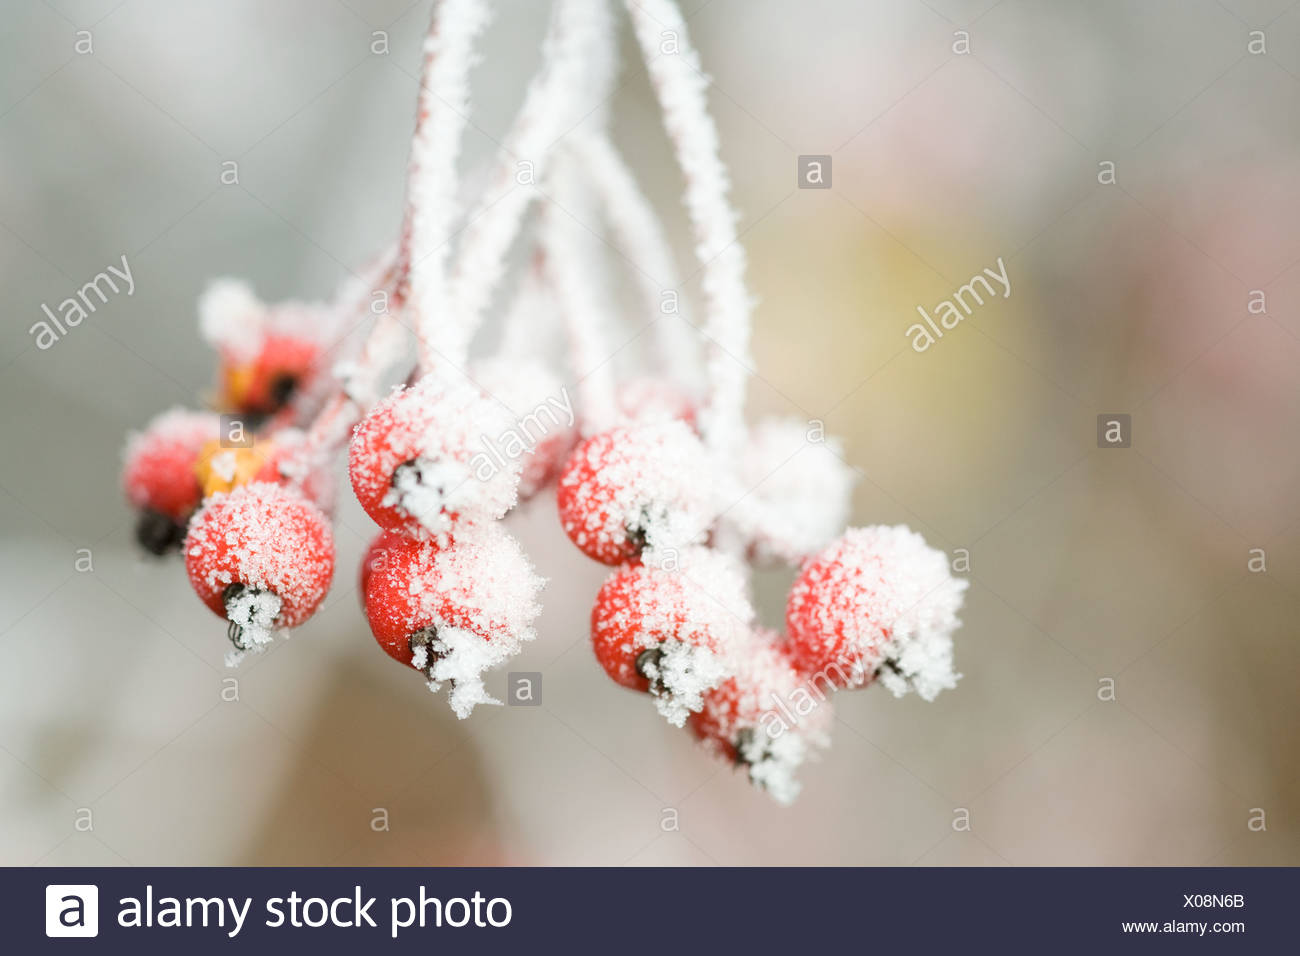 Frost on red berries - Stock Image